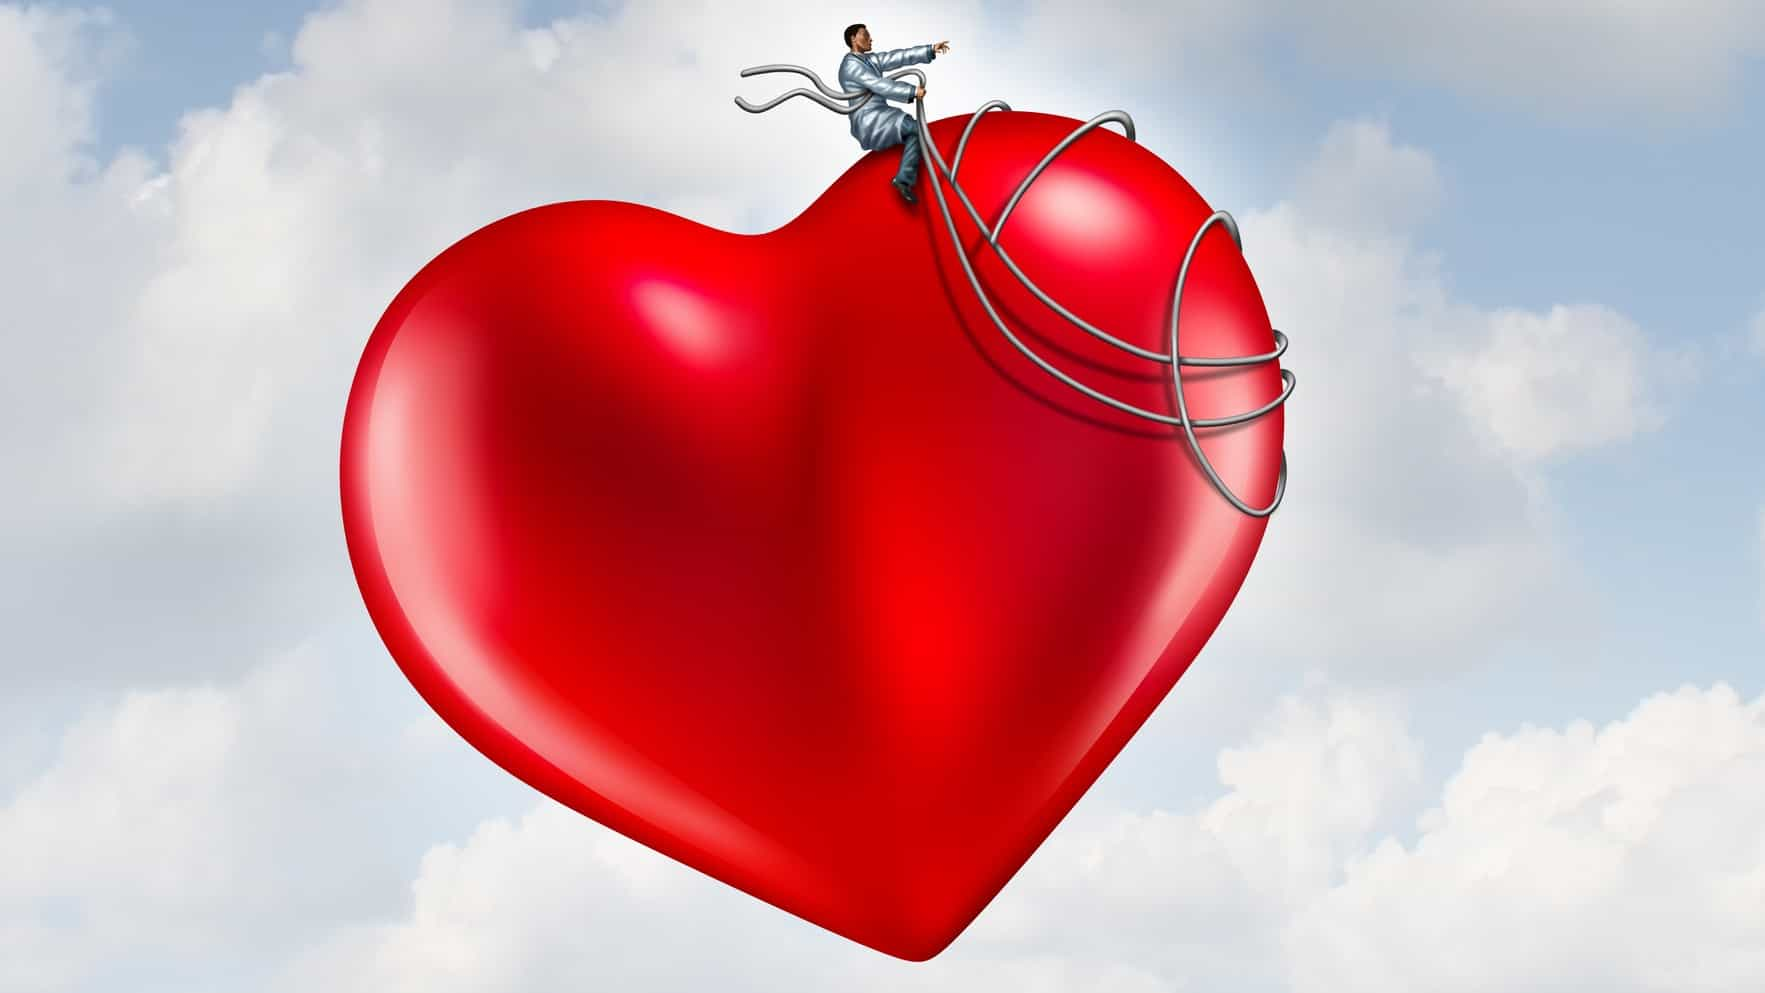 soaring hydrix share price represented by doctor riding on top of heart high up in the clouds